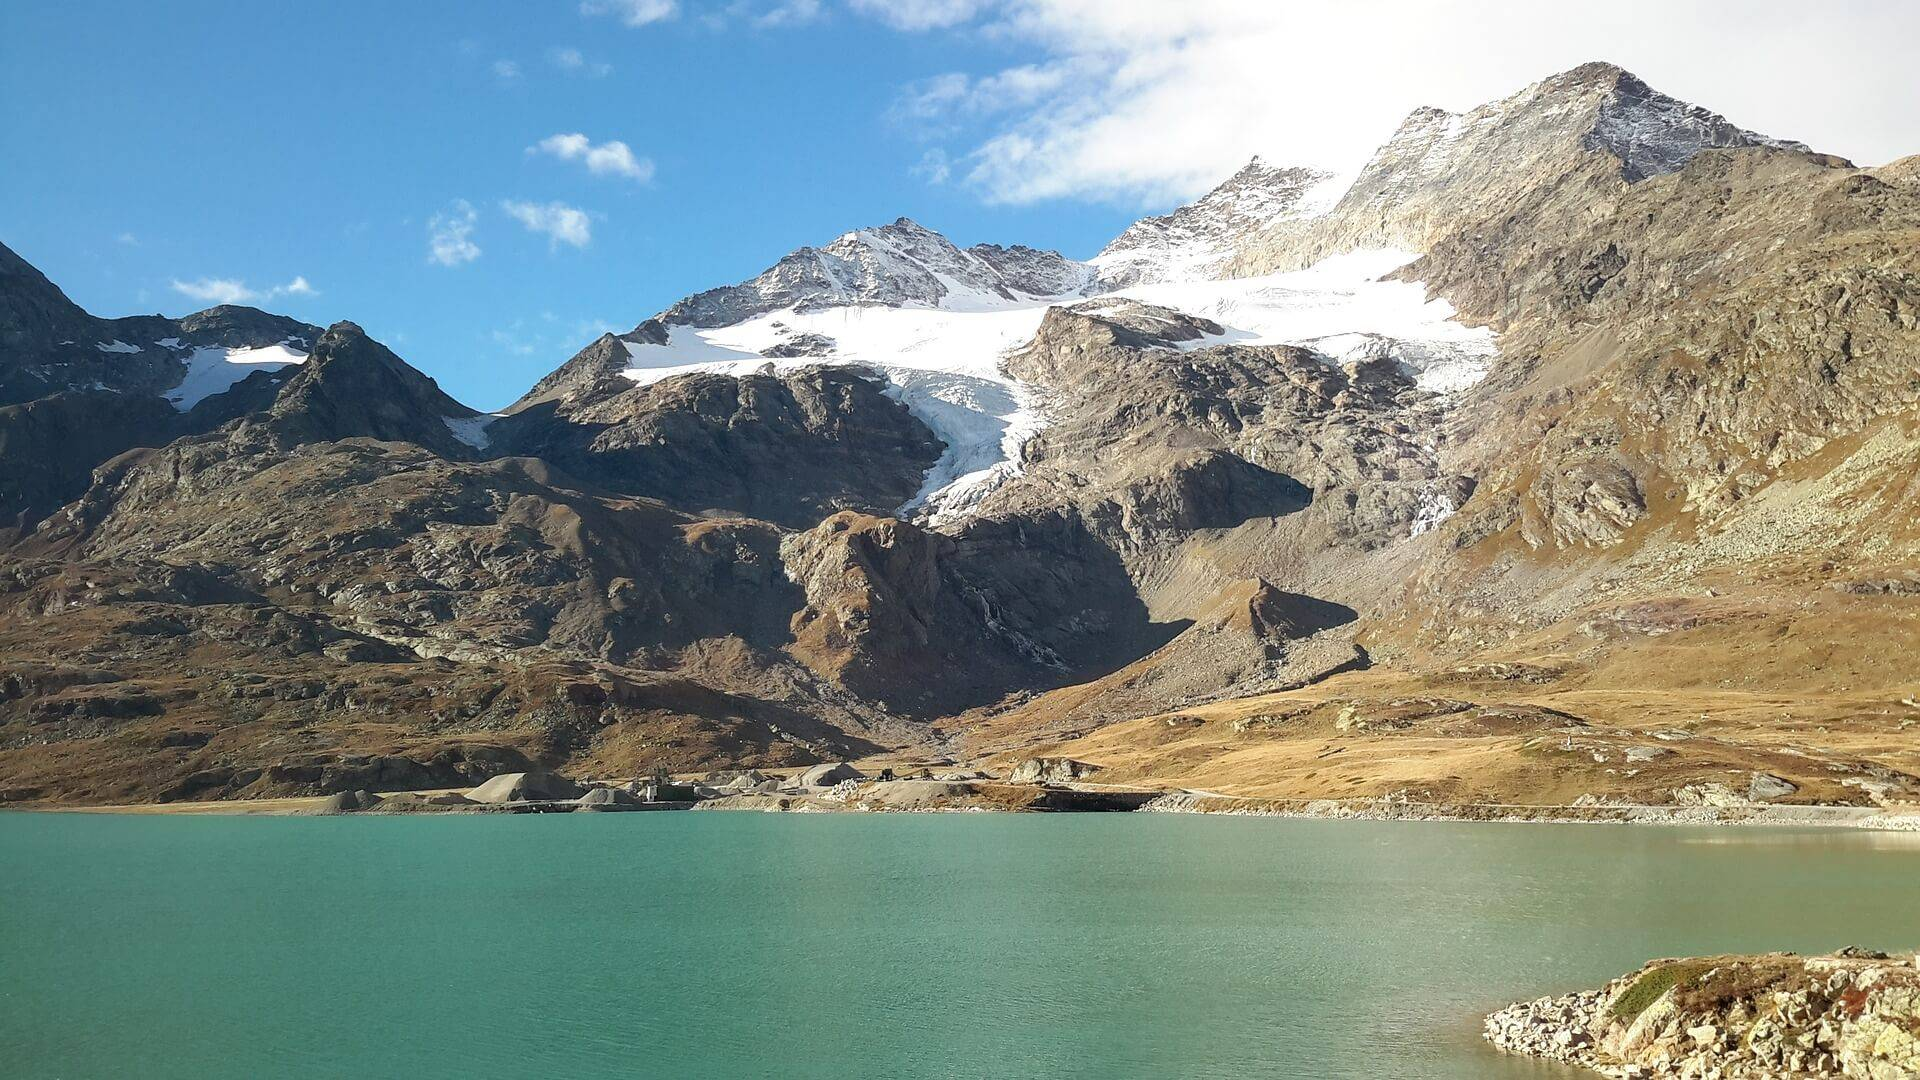 Swiss Mountains - Lake Bernina